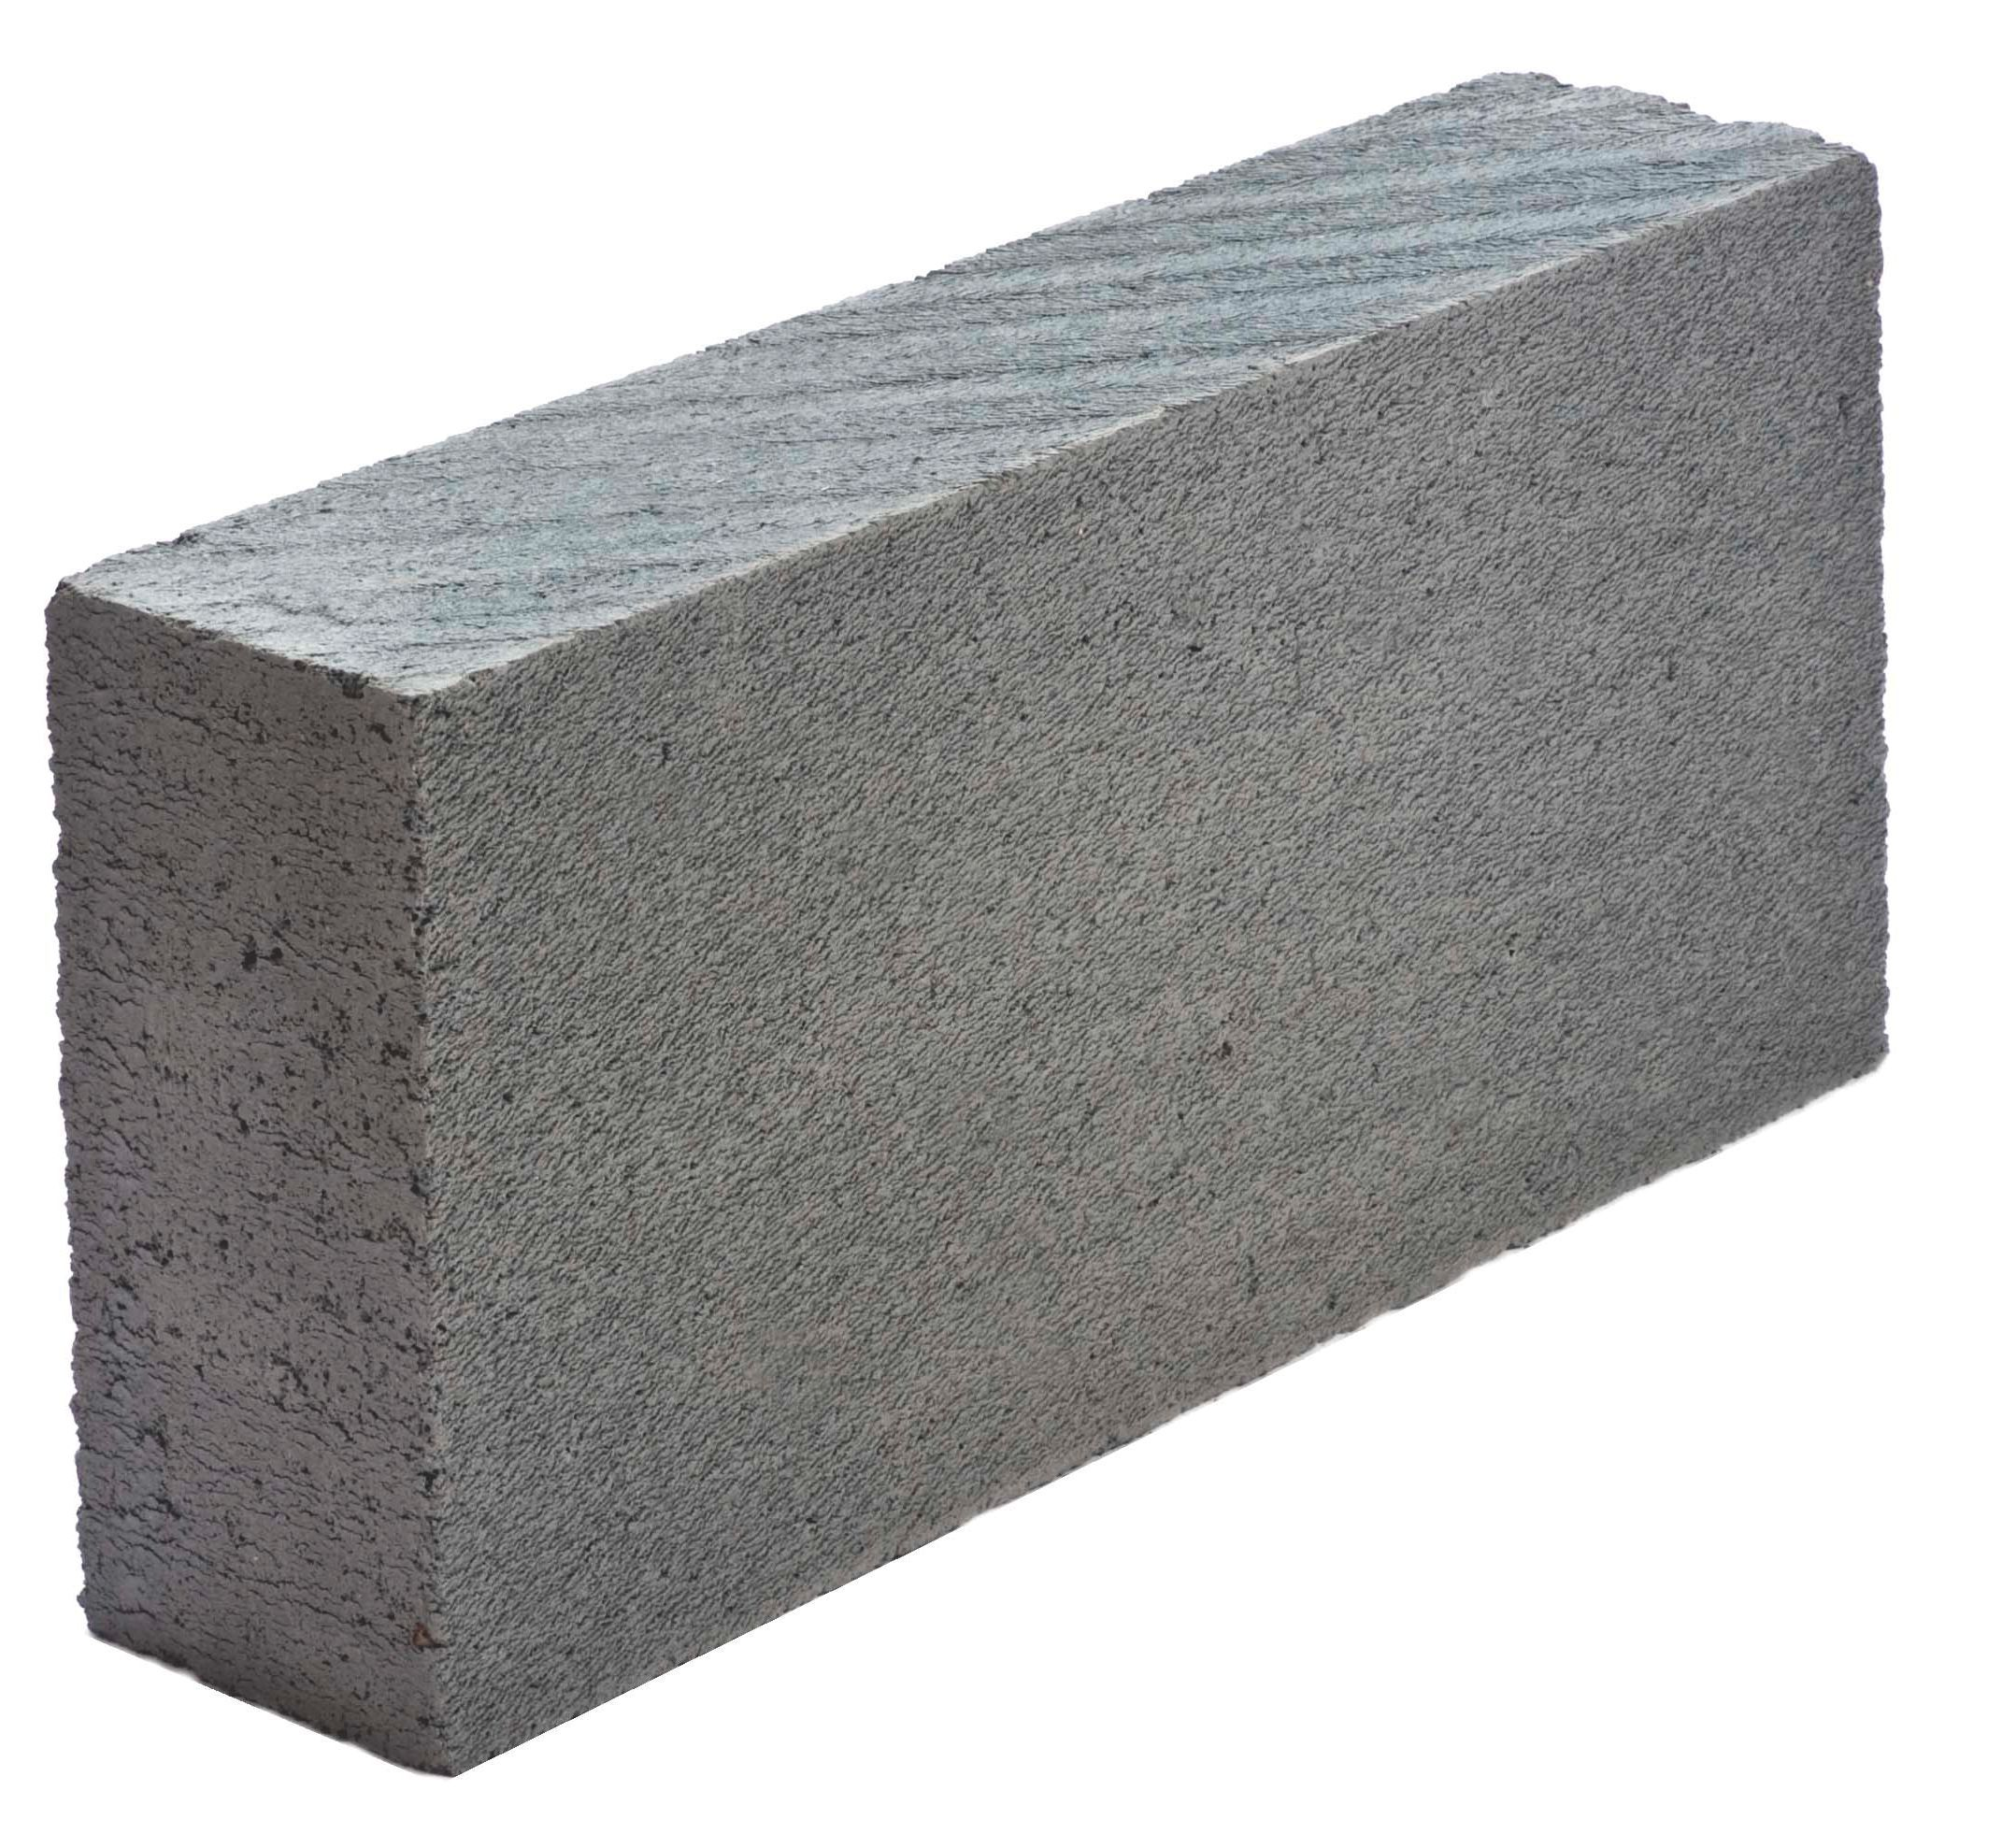 Celcon Grey Aircrete Aerated Block H215mm W100mm L